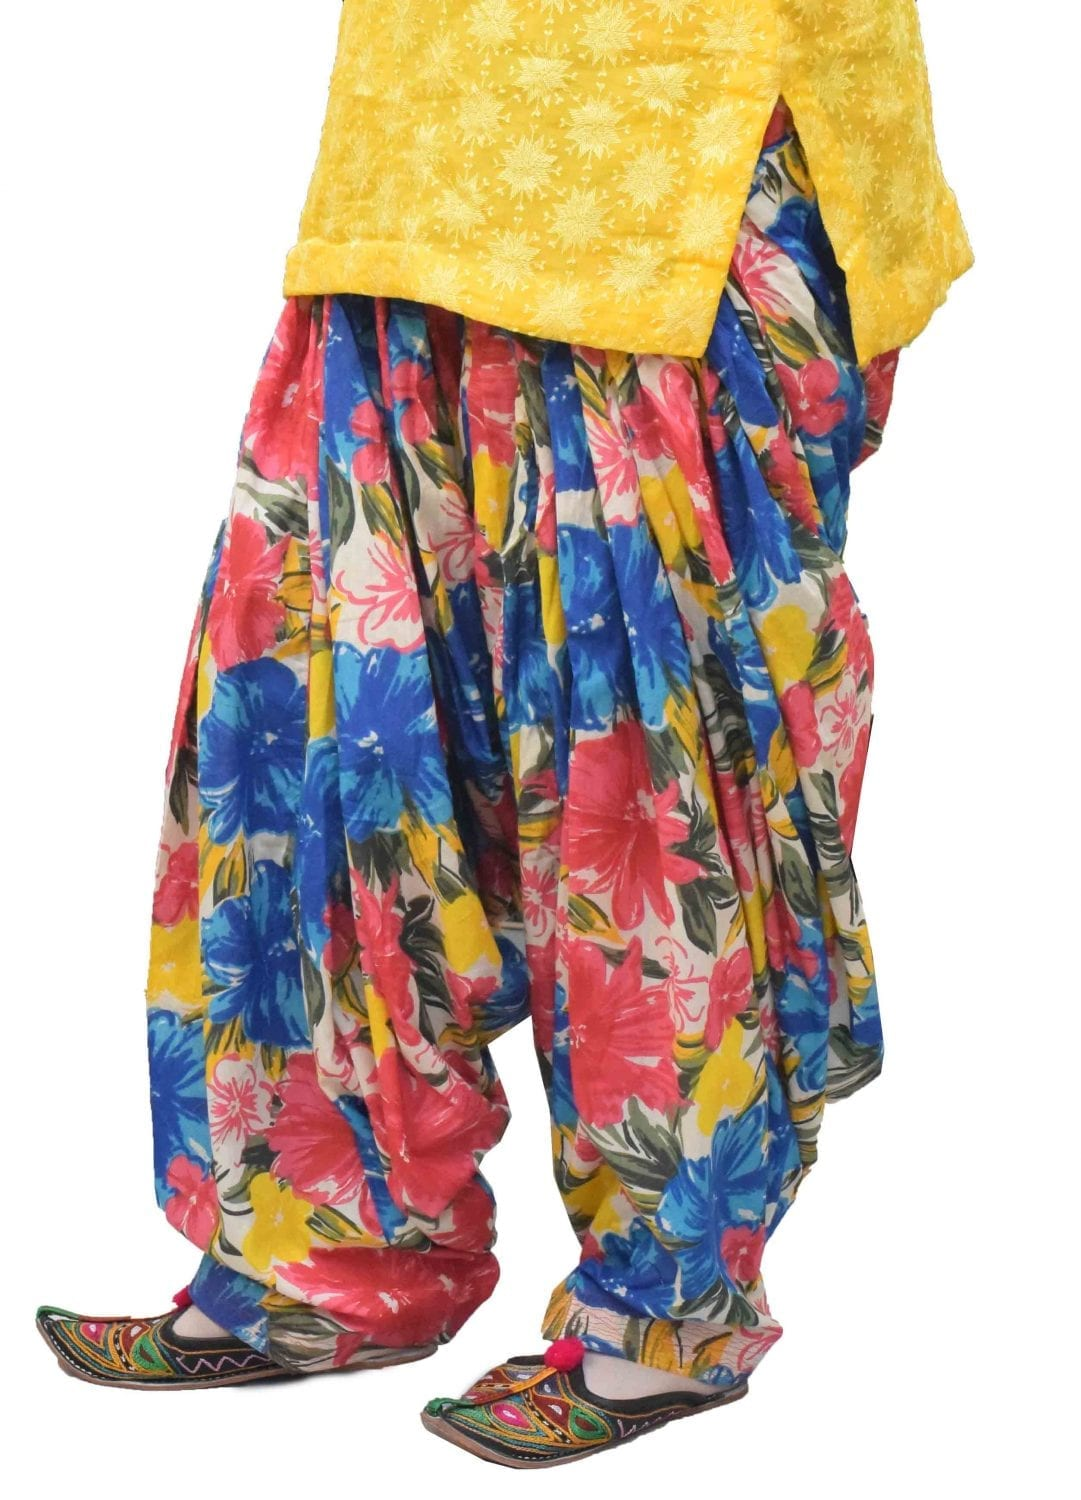 Printed Full Patiala Salwar Limited Edition 100% Pure Cotton PPS273 1